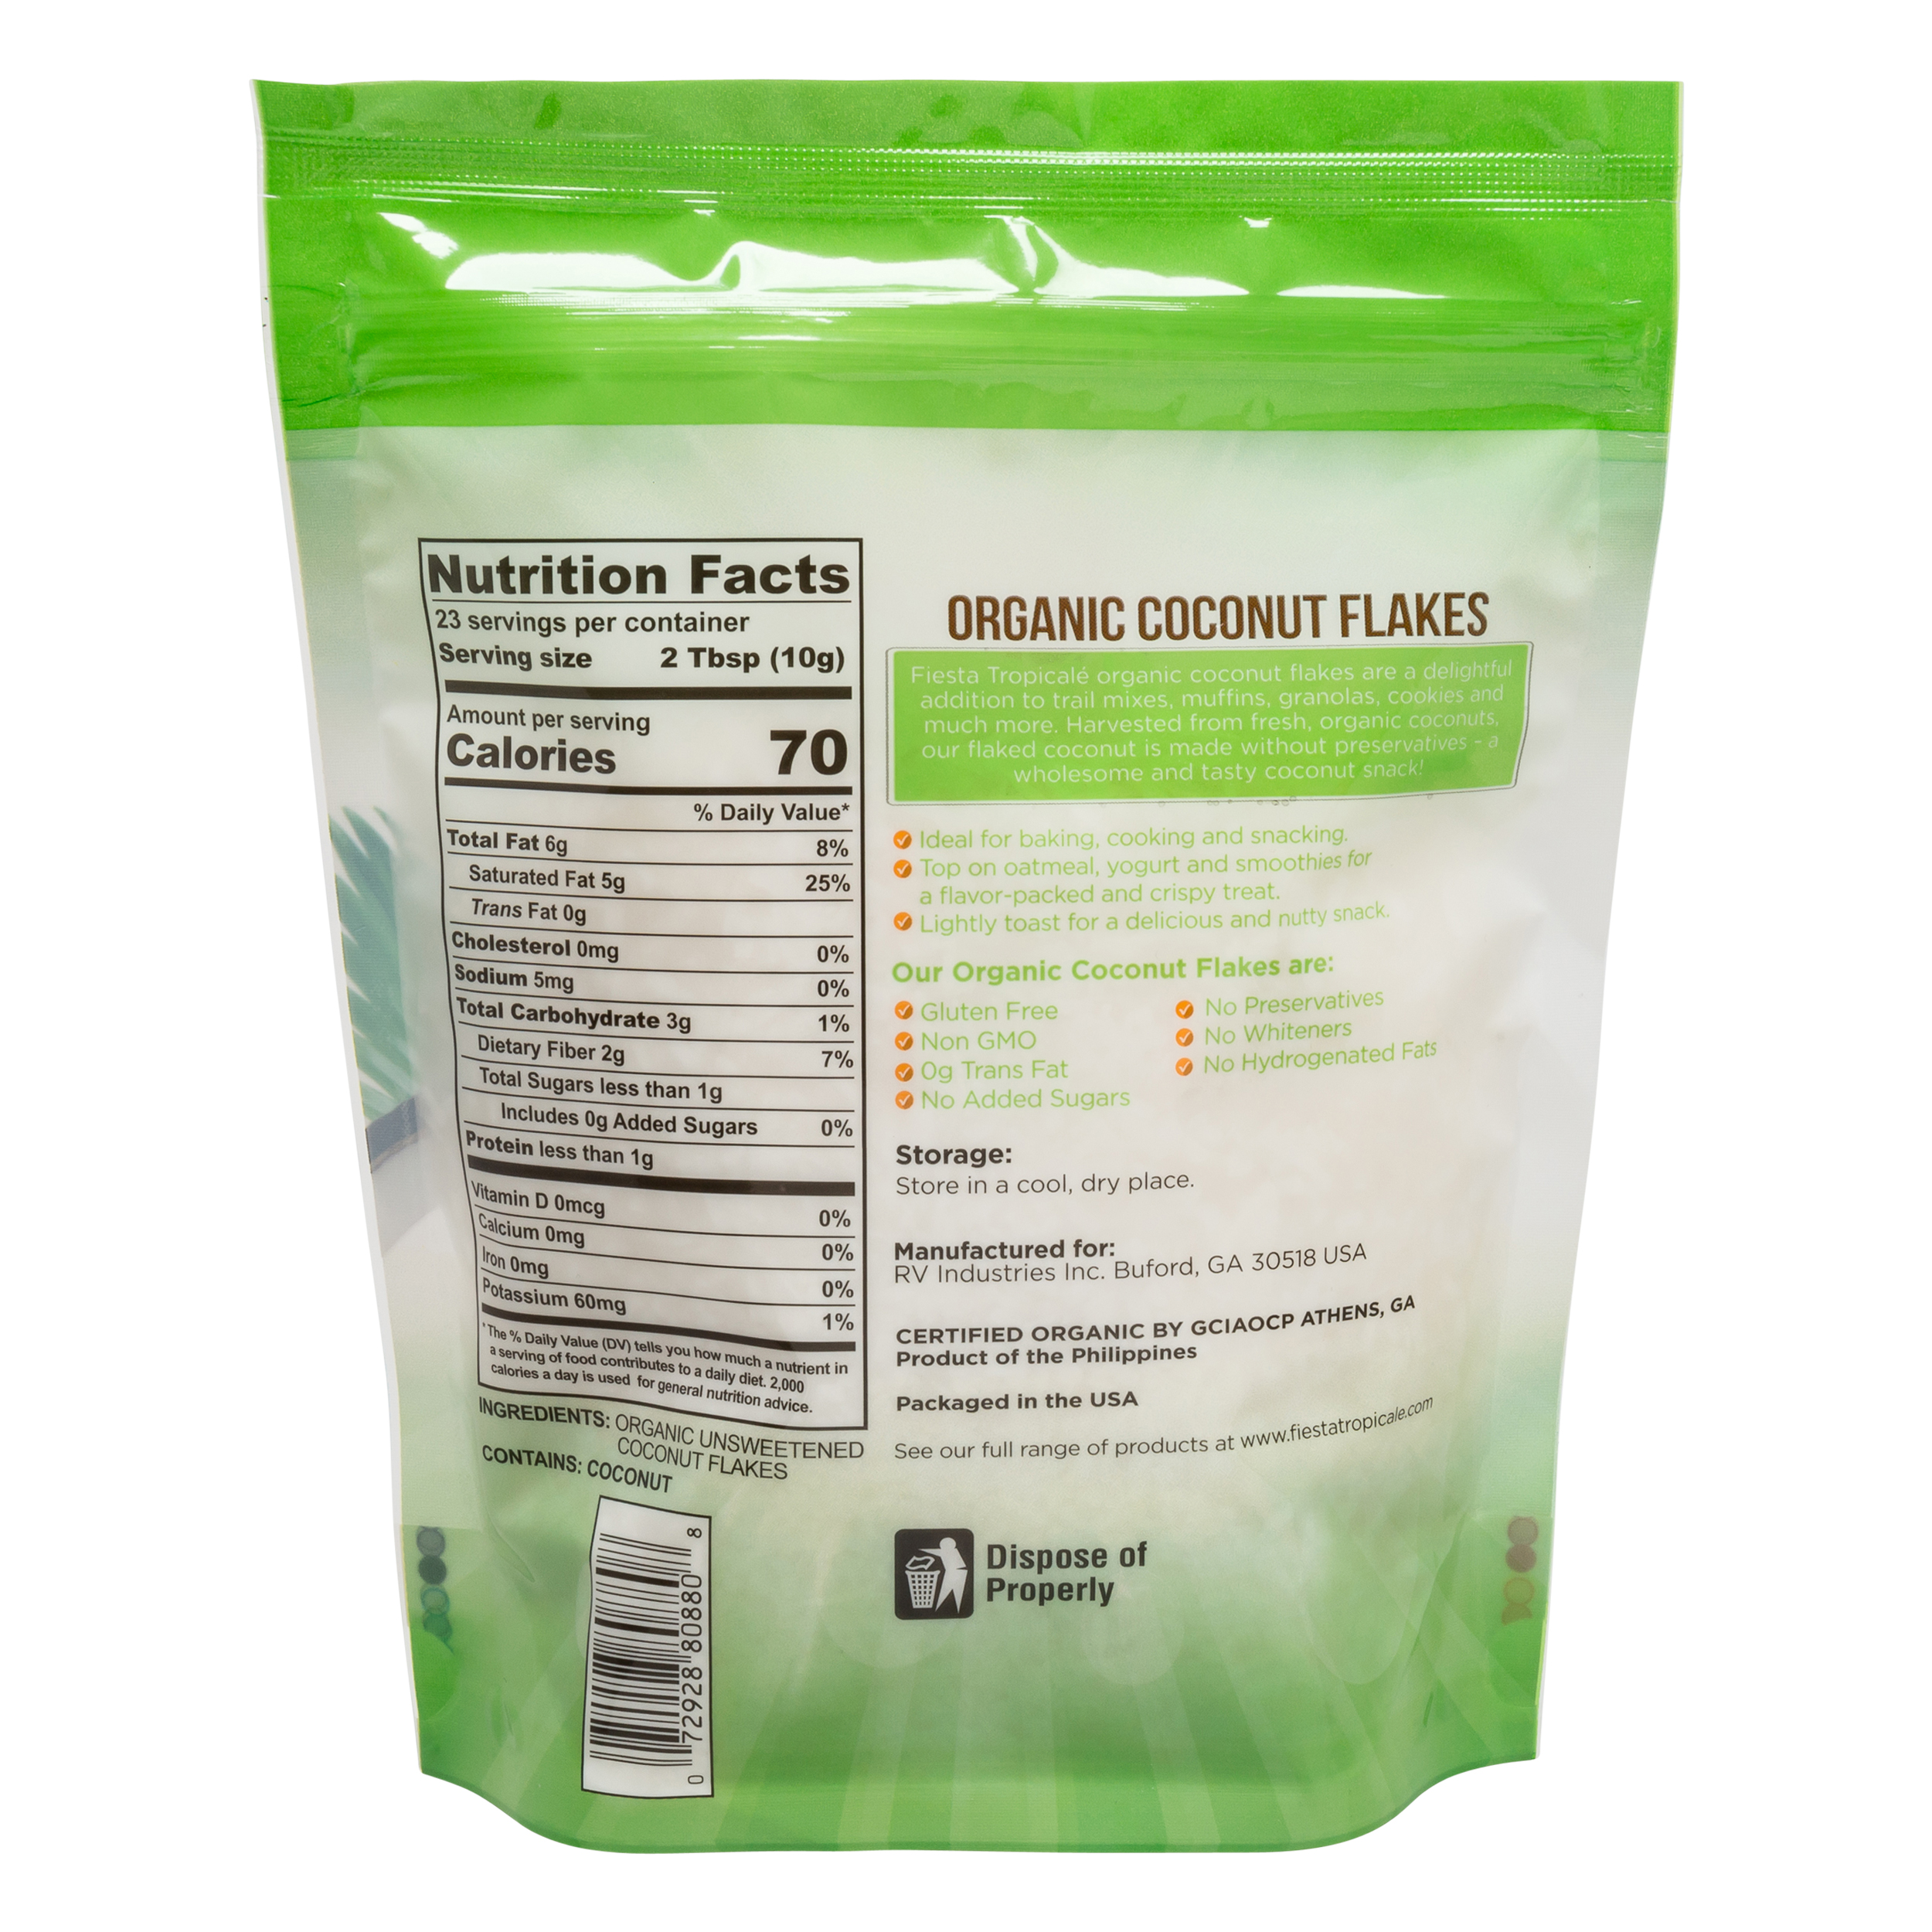 Fiesta Tropicale Organic Unsweetened Coconut Flakes_Nutritional Information